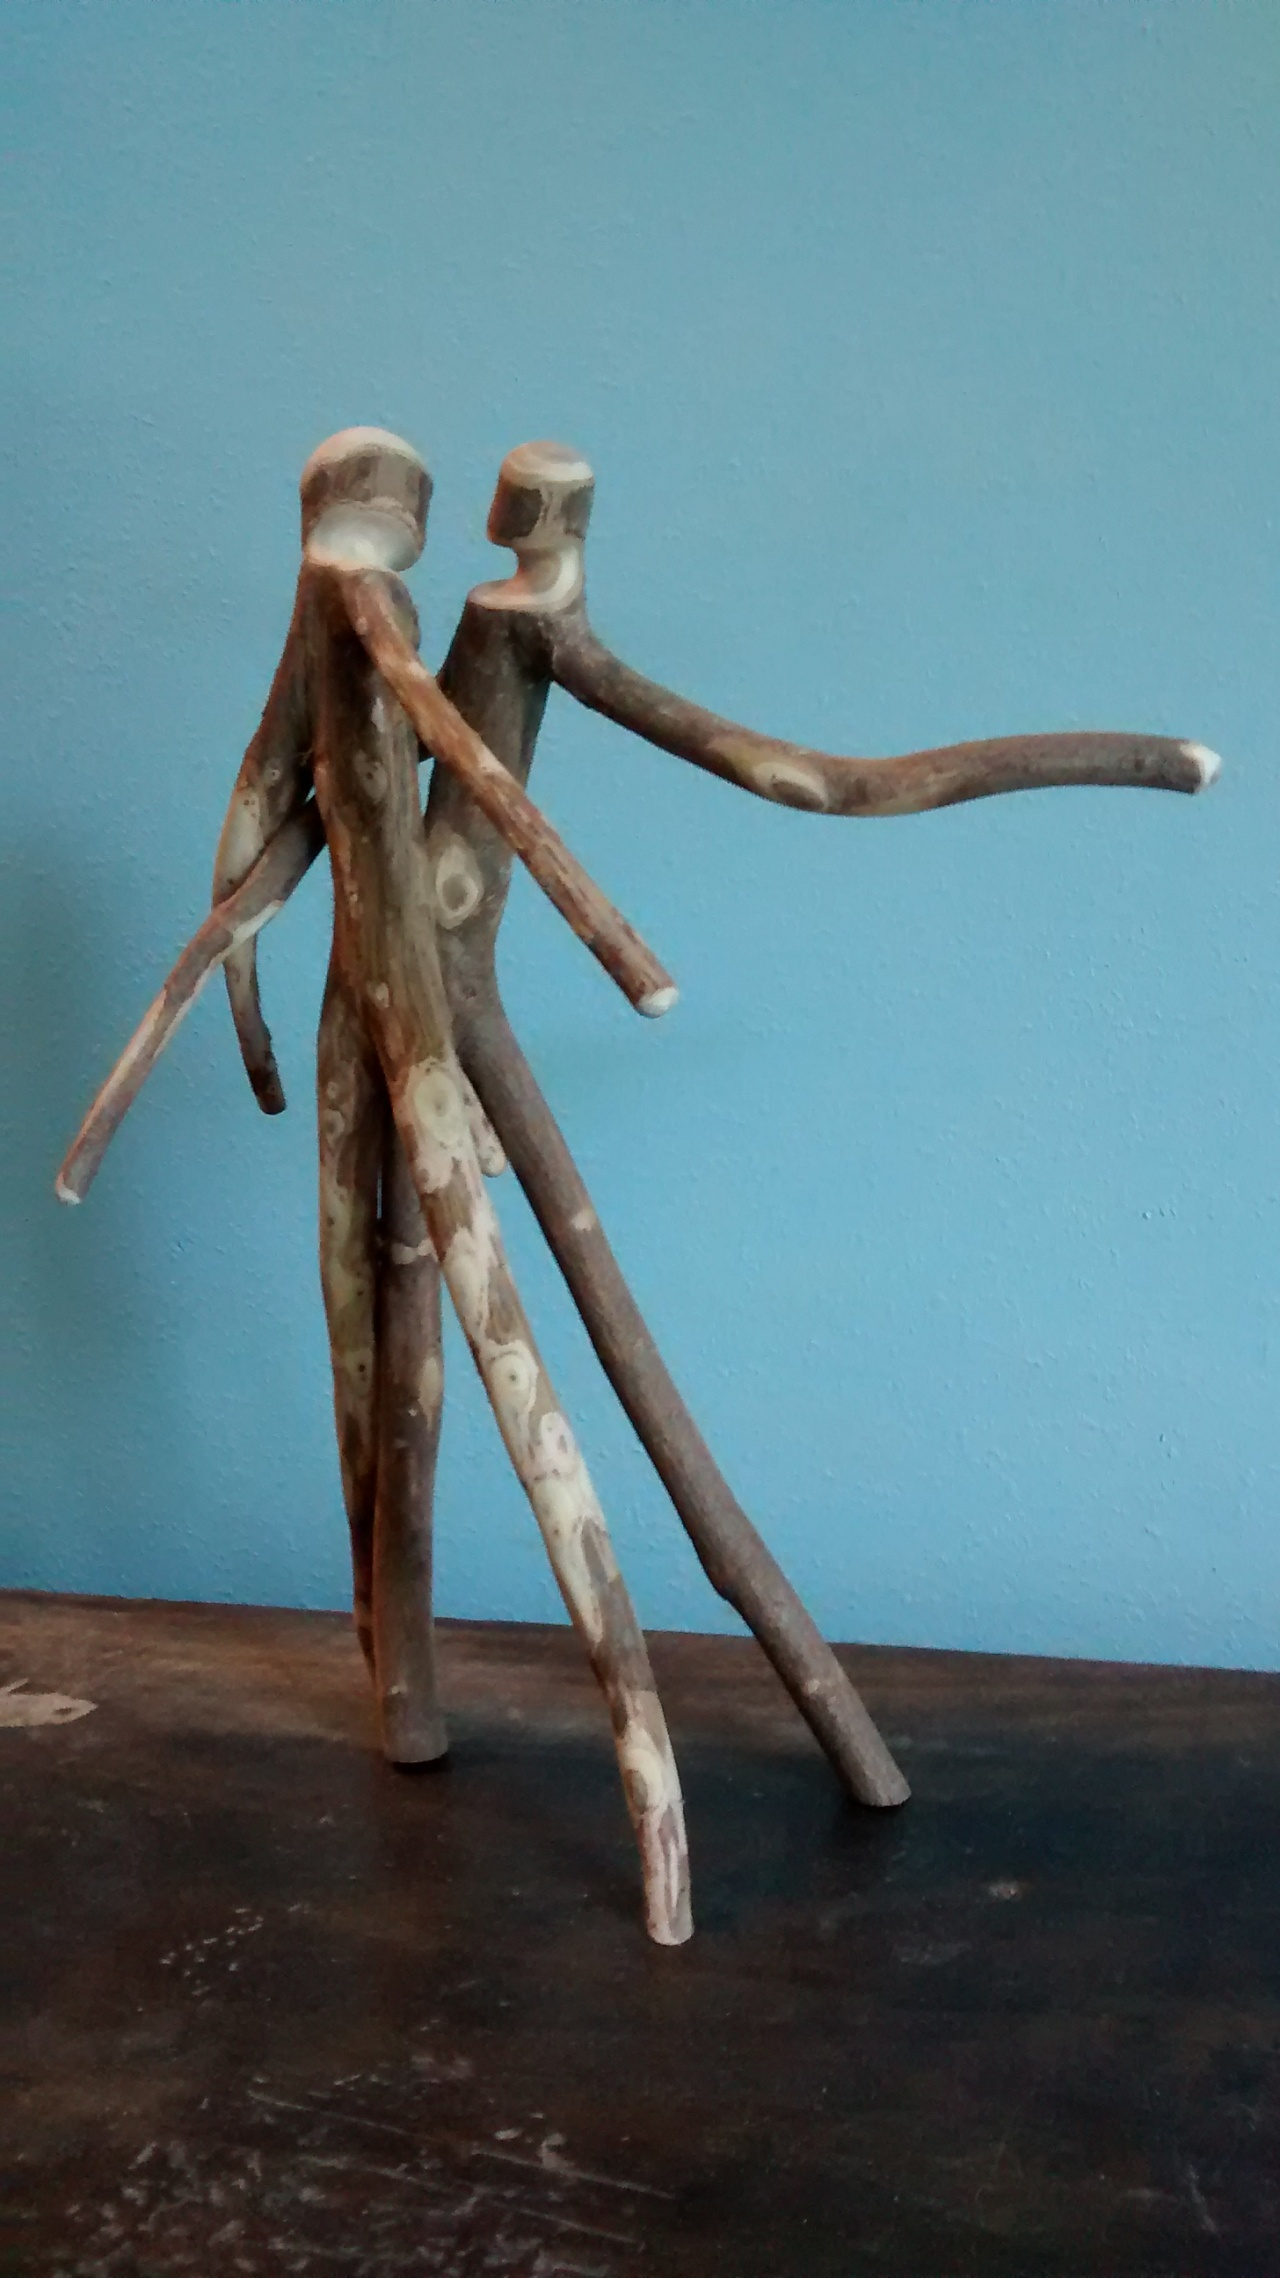 Dancing Stick Art 010216